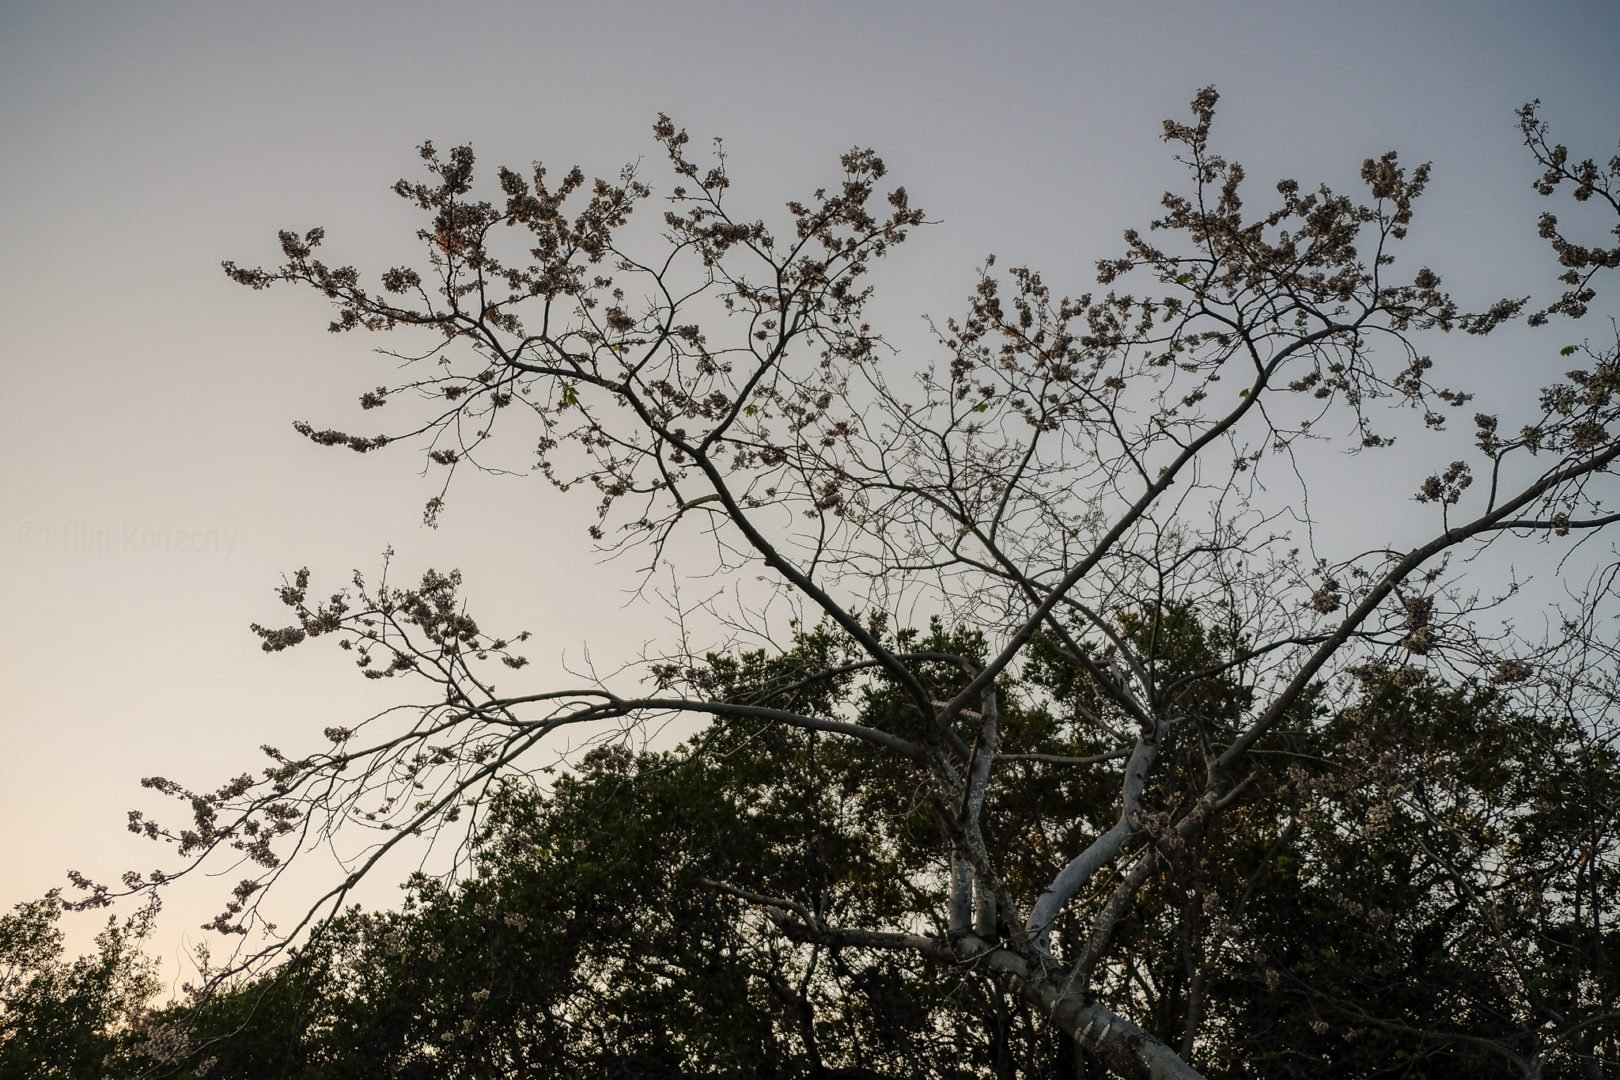 tree branches against evening sky